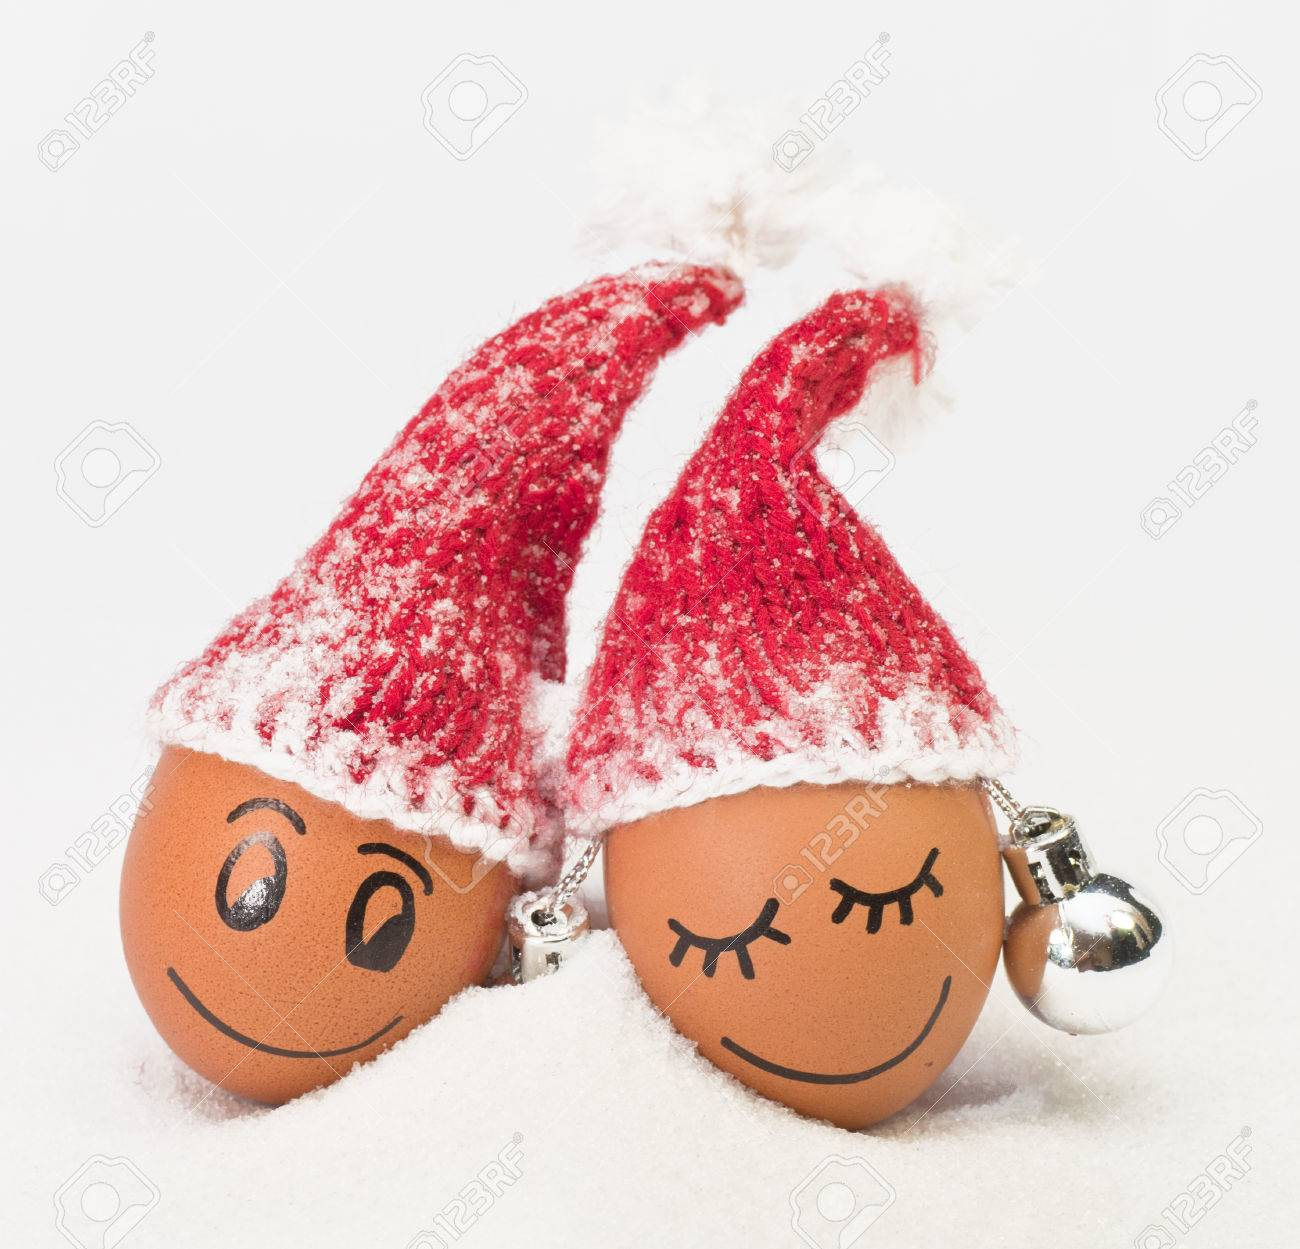 4fc1a79db9be8 funny lovely eggs in winter santa hats. sugar like a snowflakes. together  is more